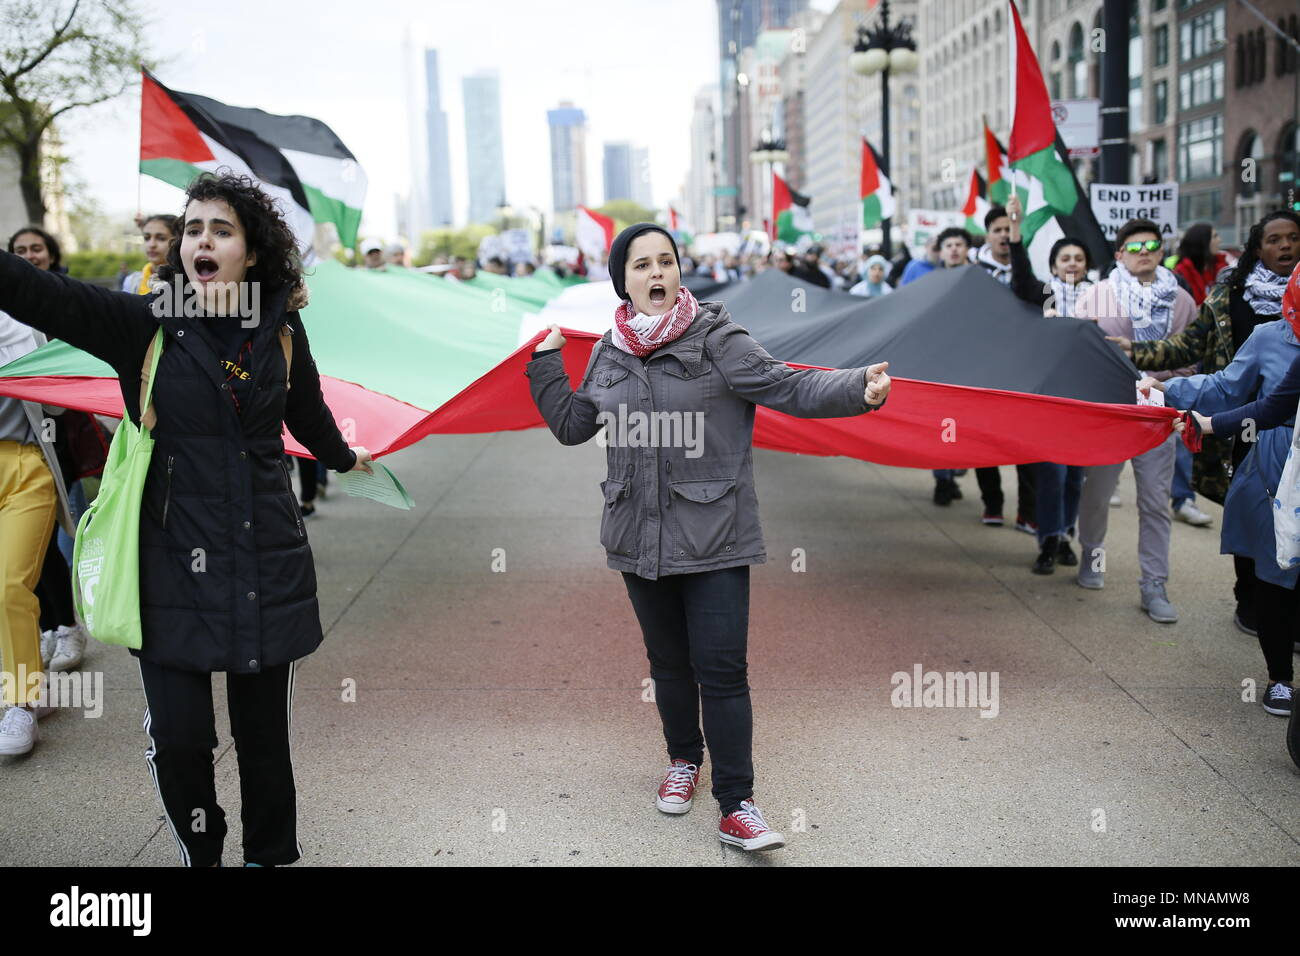 Chicago, USA  15th May, 2018  People shout slogans during a protest